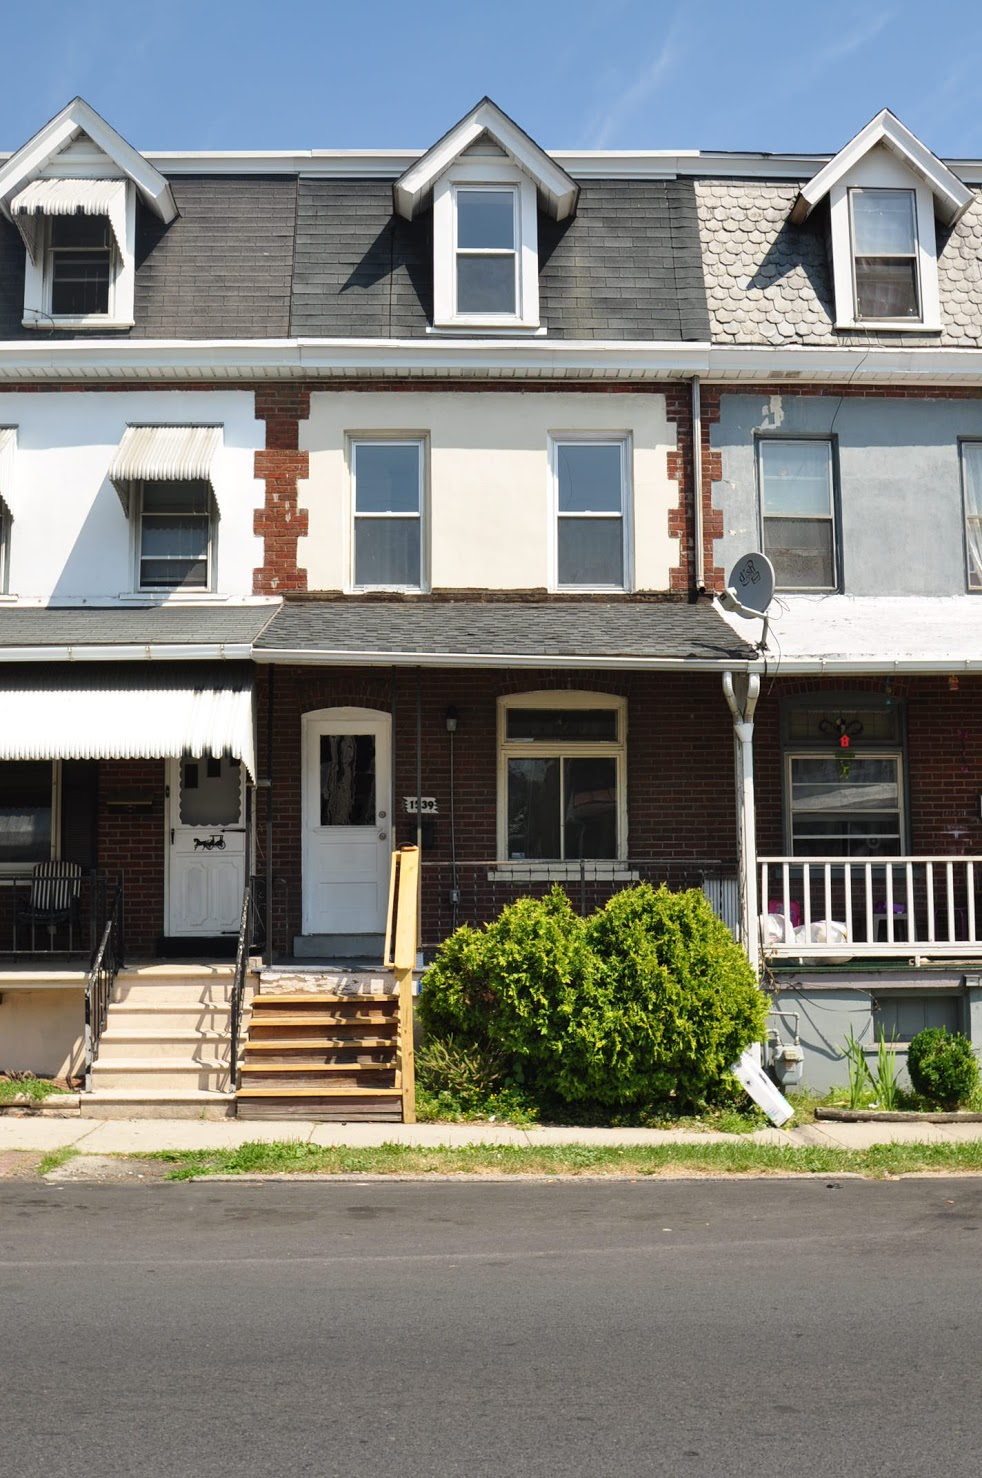 Allentown - 3 Beds 1 Baths $124,900